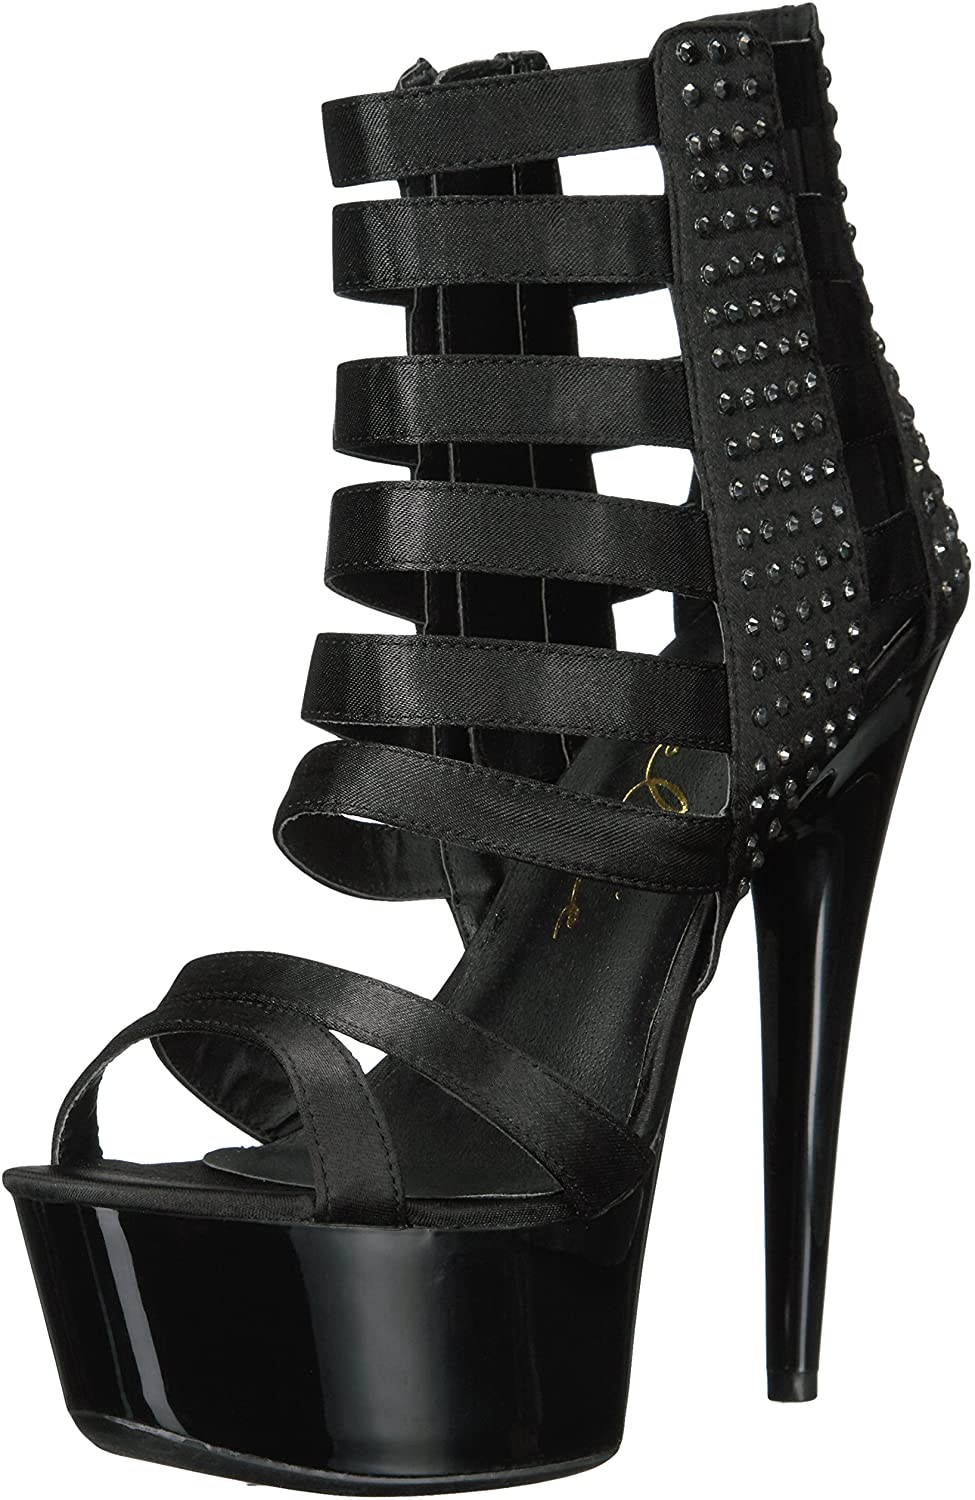 Ellie Shoes Women's 609-Noir Dress Sandal